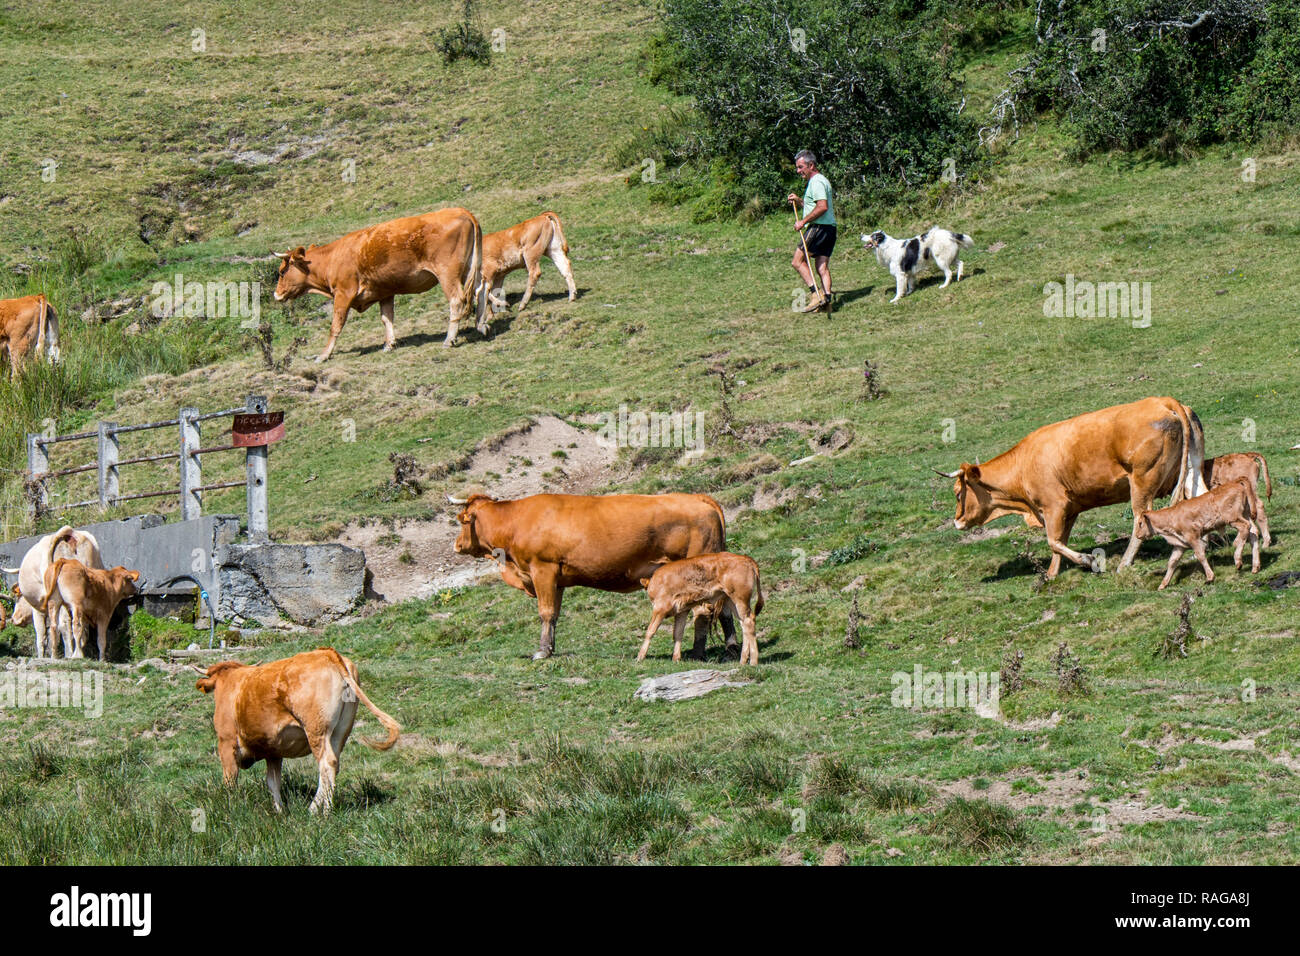 Cattleman / cowman / herdsman with dog herding Limousin cattle herd in Alpine pasture in the French Pyrenees, France - Stock Image